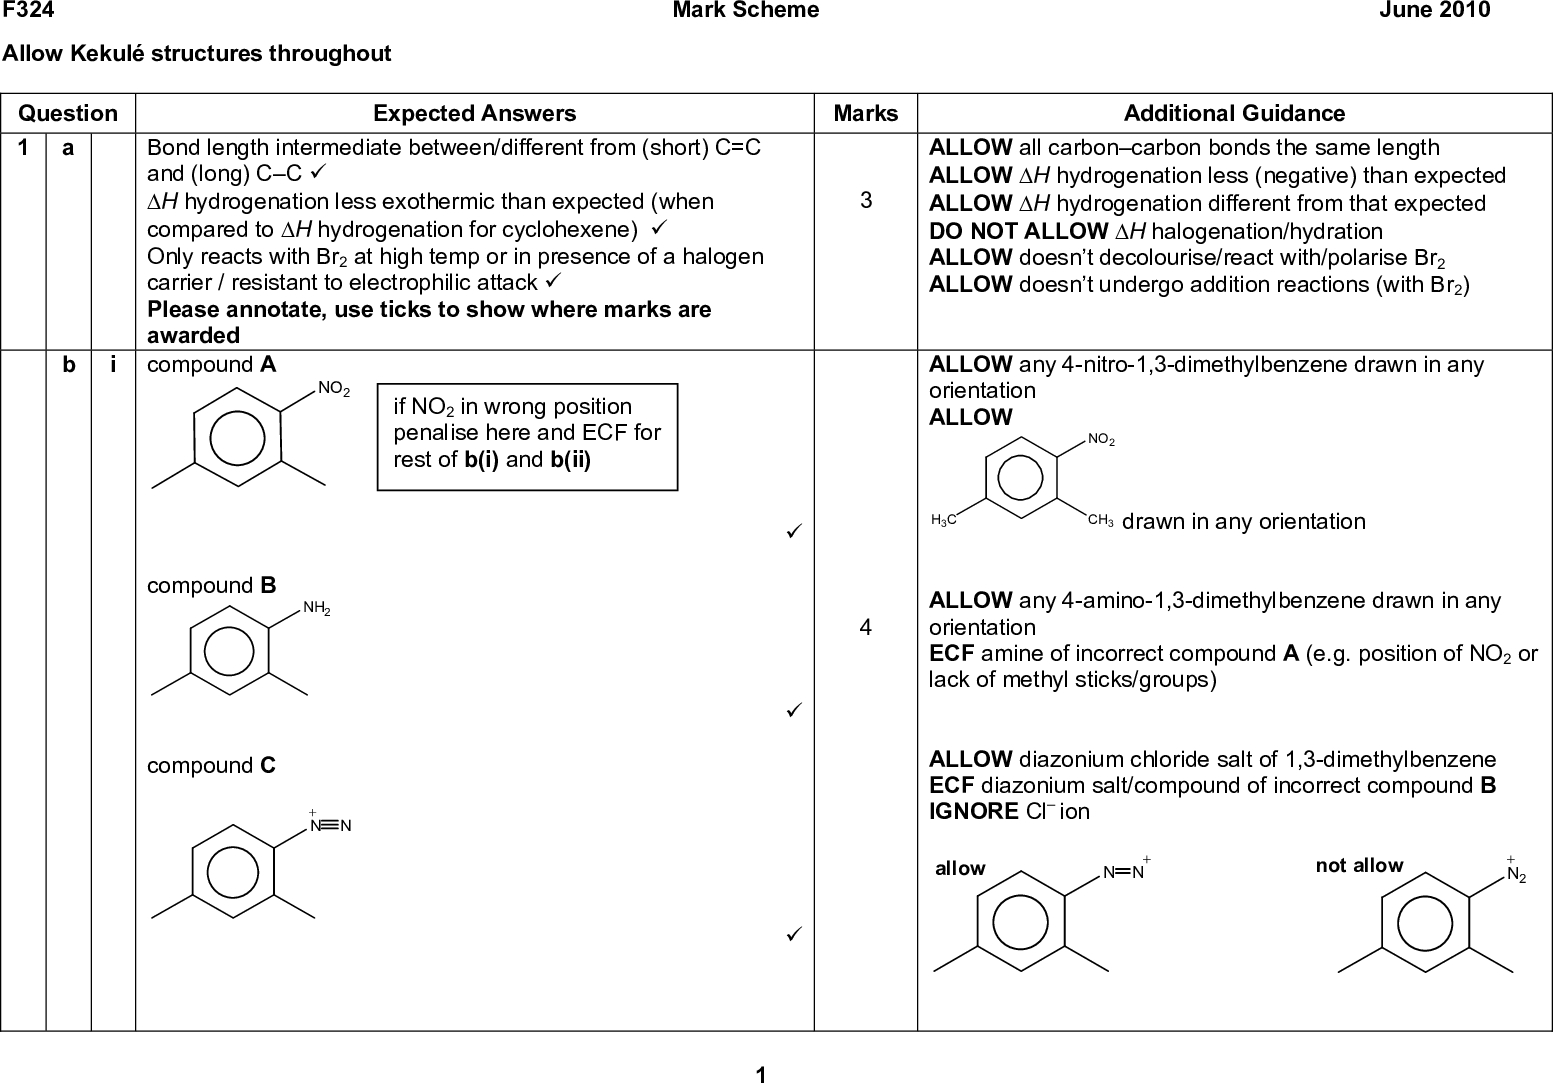 F324 Allow Kekul structures throughout Mark Scheme June 2010 Expected Answers Marks Additional Guidance Question 1 Bond length intermediate between/different from (short) C=C and (long) CC (cid:57) (cid:39)H hydrogenation less exothermic than expected (when compared to (cid:39)H hydrogenation for cyclohexene) (cid:57) Only reacts with Br2 at high temp or in presence of a halogen carrier / resistant to electrophilic attack (cid:57) Please annotate, use ticks to show where marks are awarded compound A NO2 if NO2 in wrong position penalise here and ECF for rest of b(i) and b(ii) compound B NH2 compound C + N N ALLOW all carboncarbon bonds the same length ALLOW (cid:39)H hydrogenation less (negative) than expected ALLOW (cid:39)H hydrogenation different from that expected DO NOT ALLOW (cid:39)H halogenation/hydration ALLOW doesnt decolourise/react with/polarise Br2 ALLOW doesnt undergo addition reactions (with Br2) ALLOW any 4-nitro-1,3-dimethylbenzene drawn in any orientation ALLOW NO2 CH3 drawn in any orientation H3C ALLOW any 4-amino-1,3-dimethylbenzene drawn in any orientation ECF amine of incorrect compound A (e.g. position of NO2 or lack of methyl sticks/groups) ALLOW diazonium chloride salt of 1,3-dimethylbenzene ECF diazonium salt/compound of incorrect compound B IGNORE Cl ion + N N not allow + N2 (cid:57) (cid:57) (cid:57) allow<br />  F324 Question Mark Scheme June 2010 Expected Answers Marks Additional Guidance compound D HO ALLOW if + charge is floating between the two Ns only if it is closer to the correct N allow not allow OH O- ALLOW any of OH (cid:57) OH ALLOW O in place of OH<br />  F324 Question ii If NO2 is in correct position do not penalise even if compound A in b(i) is not in correct position Expected Answers mark 1 HNO3 + 2H2SO4 (cid:111) H3O+ + 2HSO4 mark 4curly arrow from CH bond back to reform (cid:83) ring AND correct products (cid:57)+ NO2 + (cid:57) +NO2 NO2 NO2 + H+ mark 3intermediate with (cid:83) ring broken in the correct place (cid:57) 